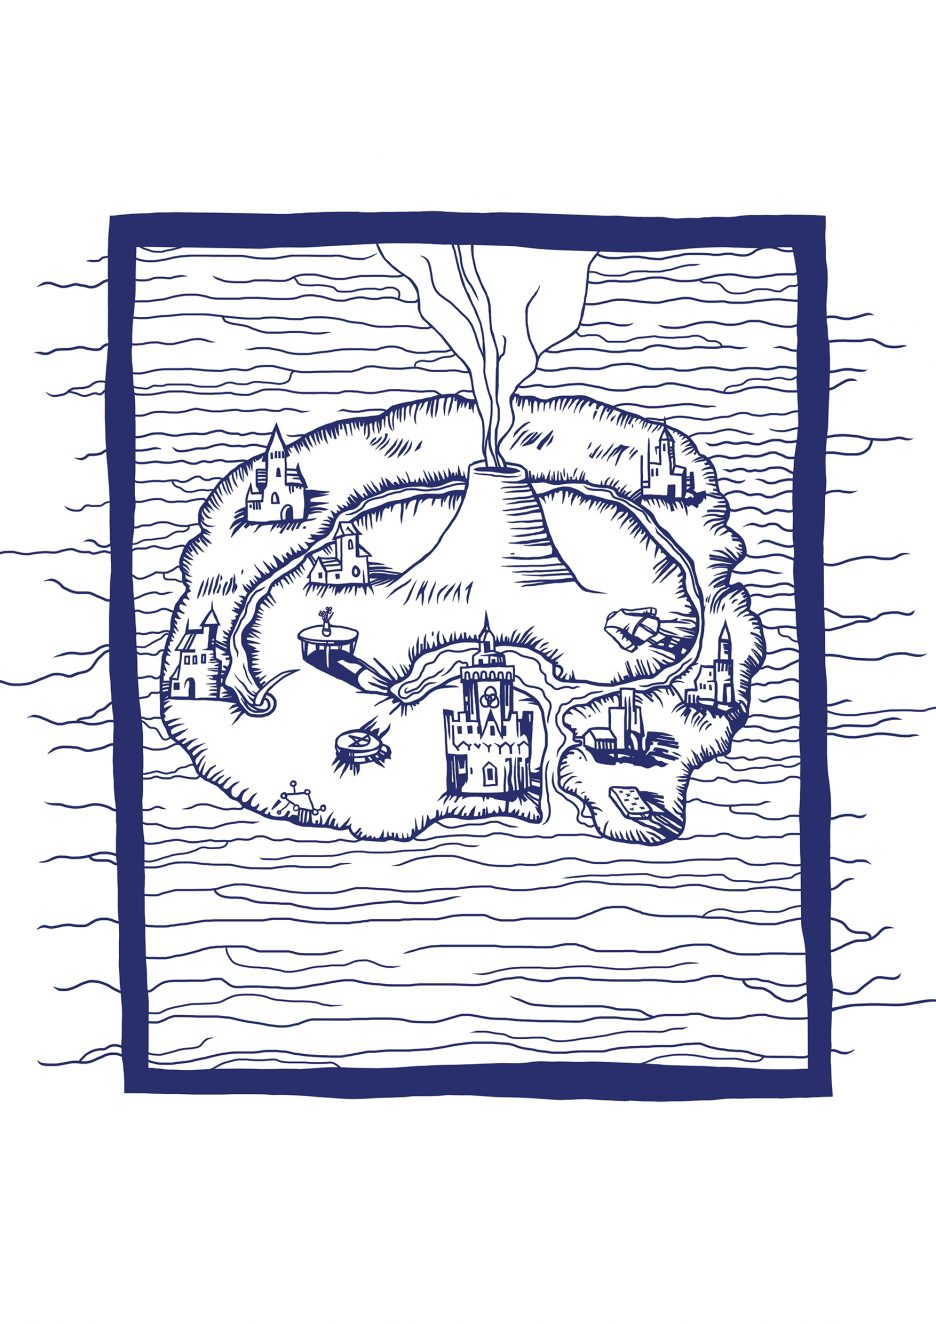 A drawing in blue lines of an island with a volcano, castle and towns.